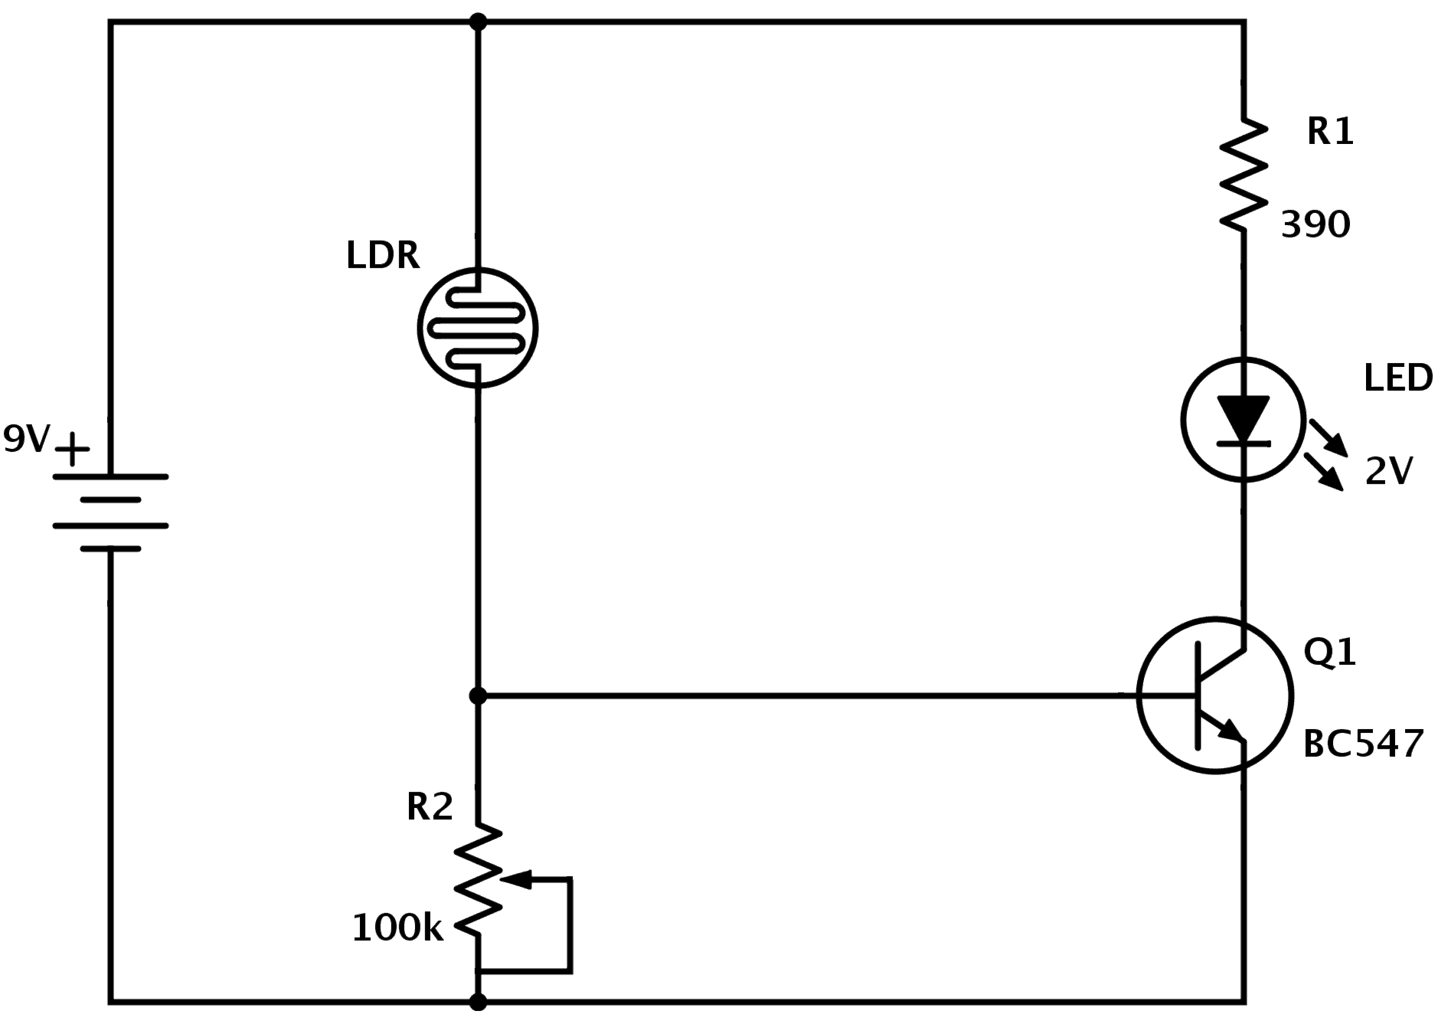 circuit diagram how to read and understand any schematic rh build electronic circuits com logic circuit diagram examples schematic diagram examples